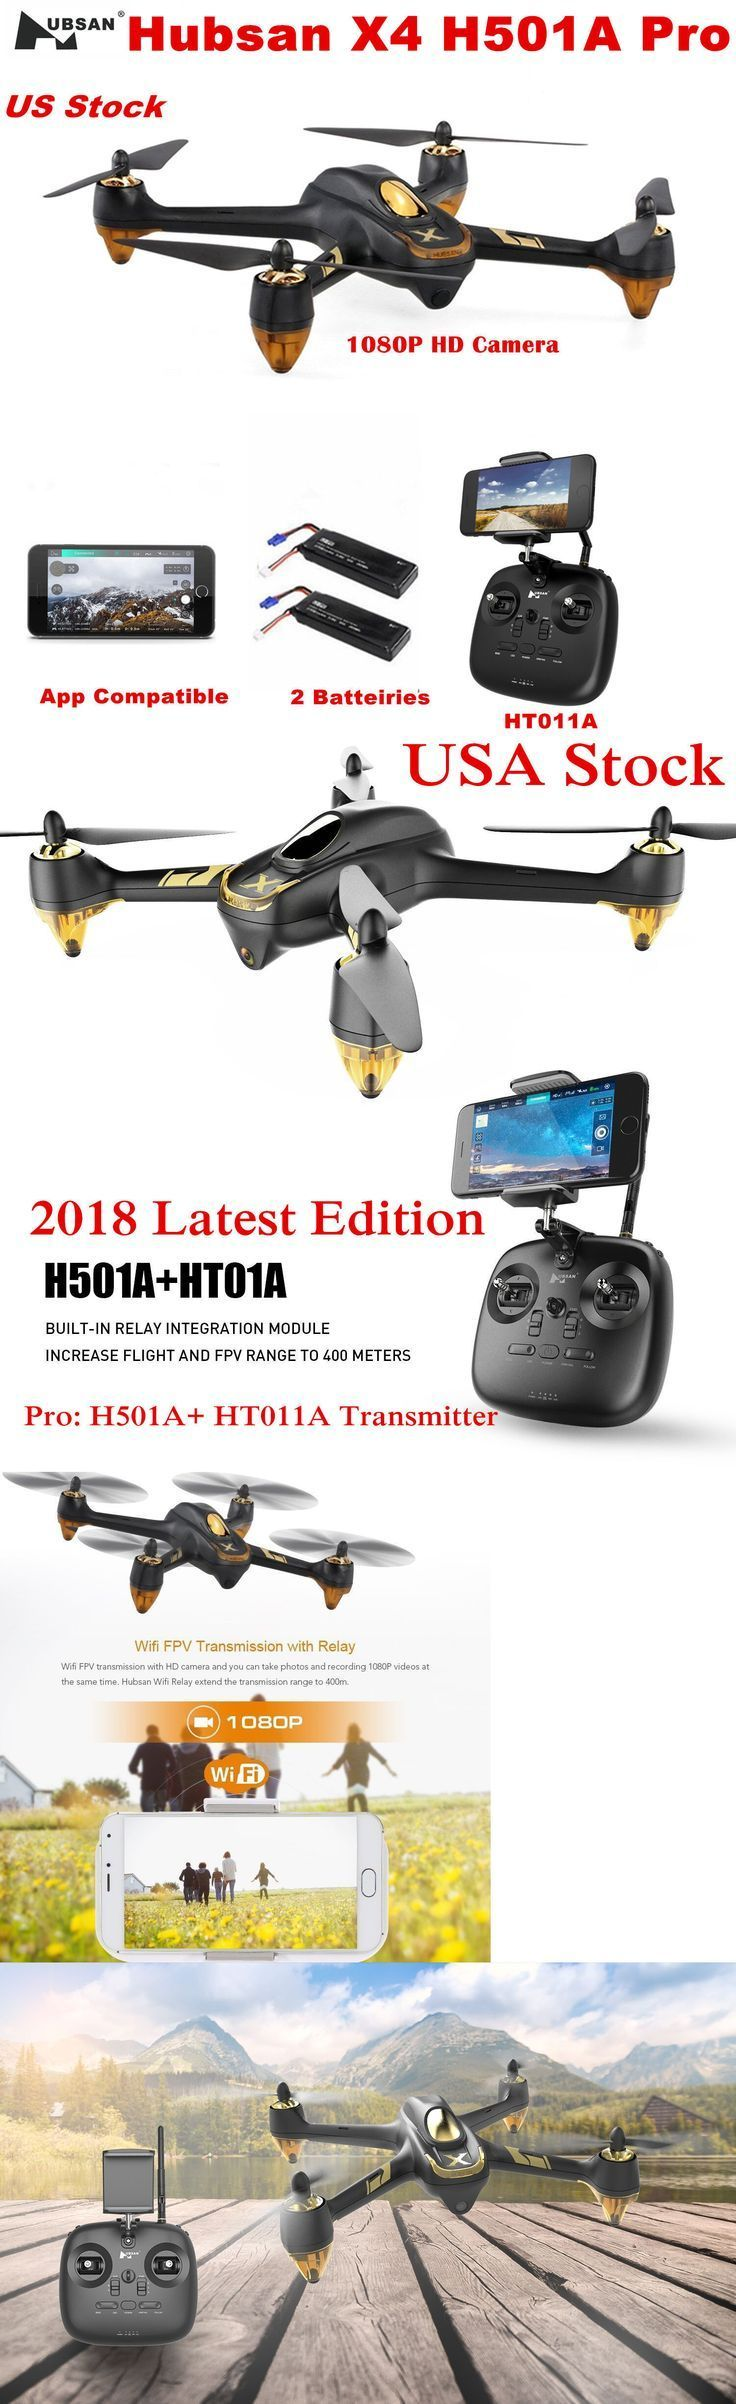 Drone Quadcopter : Drone Quadcopter : Quadcopters and Multicopters 182185: Hubsa...